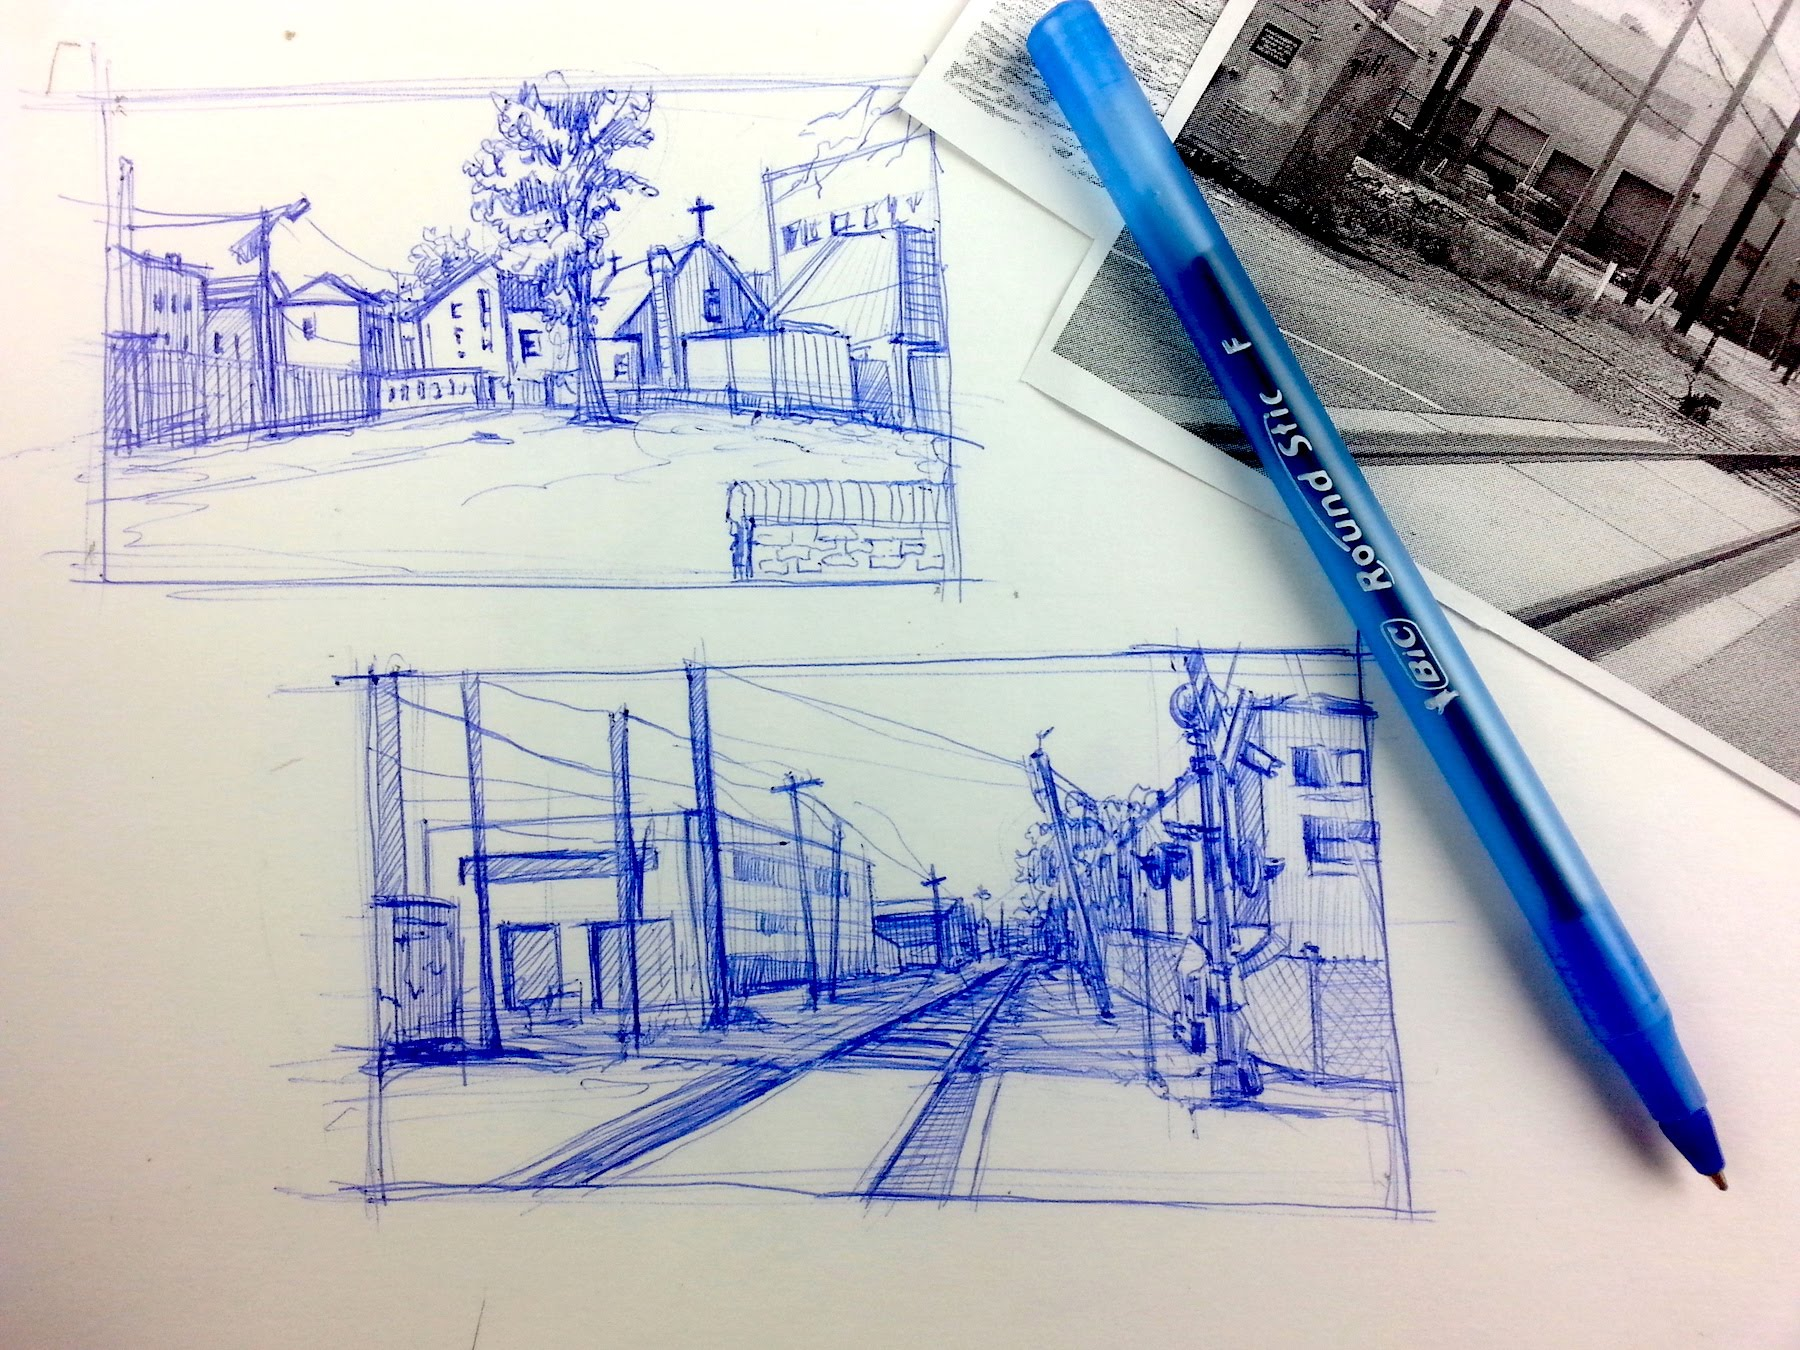 Drawn scenic busy city Sketching simple flat  breakdown